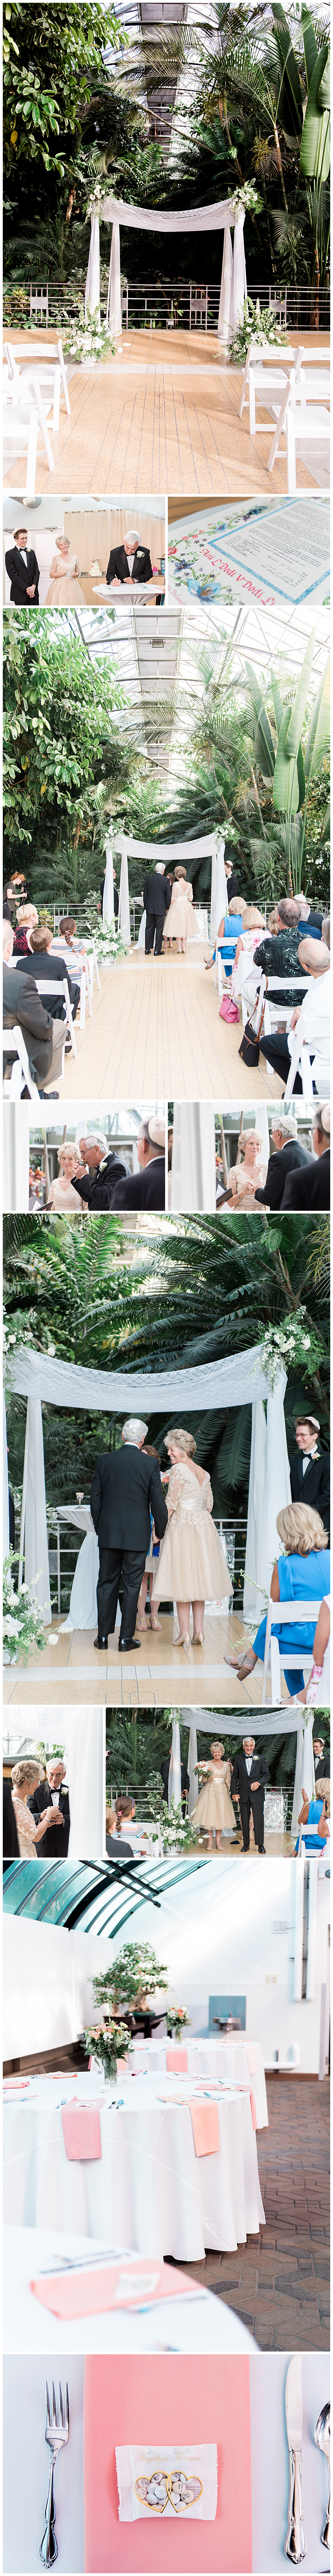 debbie and rob's wedding krohn conservatory chapel lane photography 2